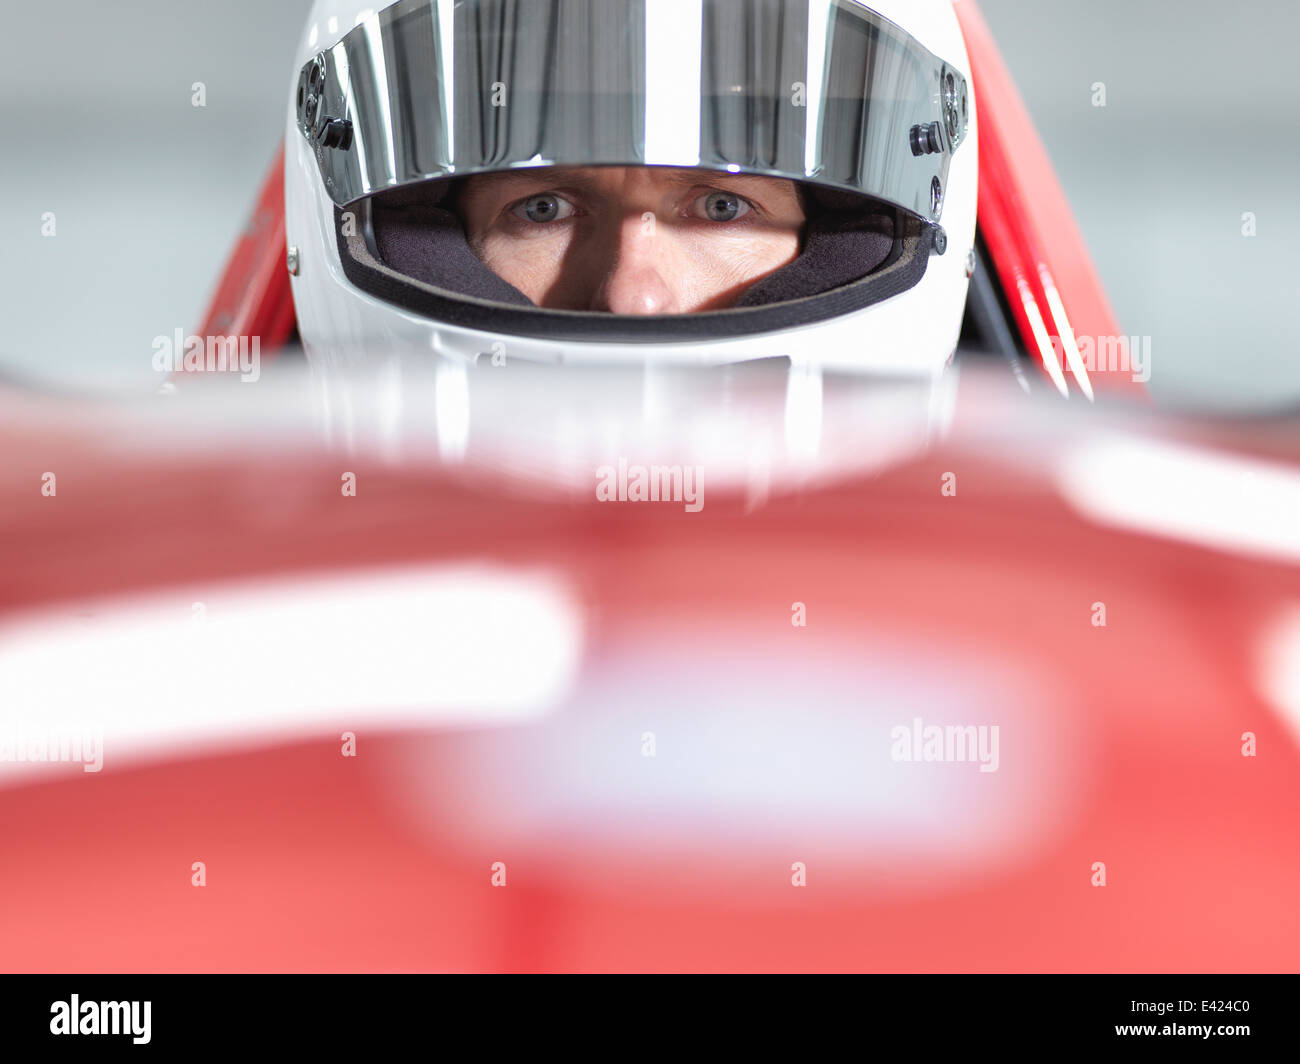 Close up portrait of racing car driver wearing helmet in supercar - Stock Image